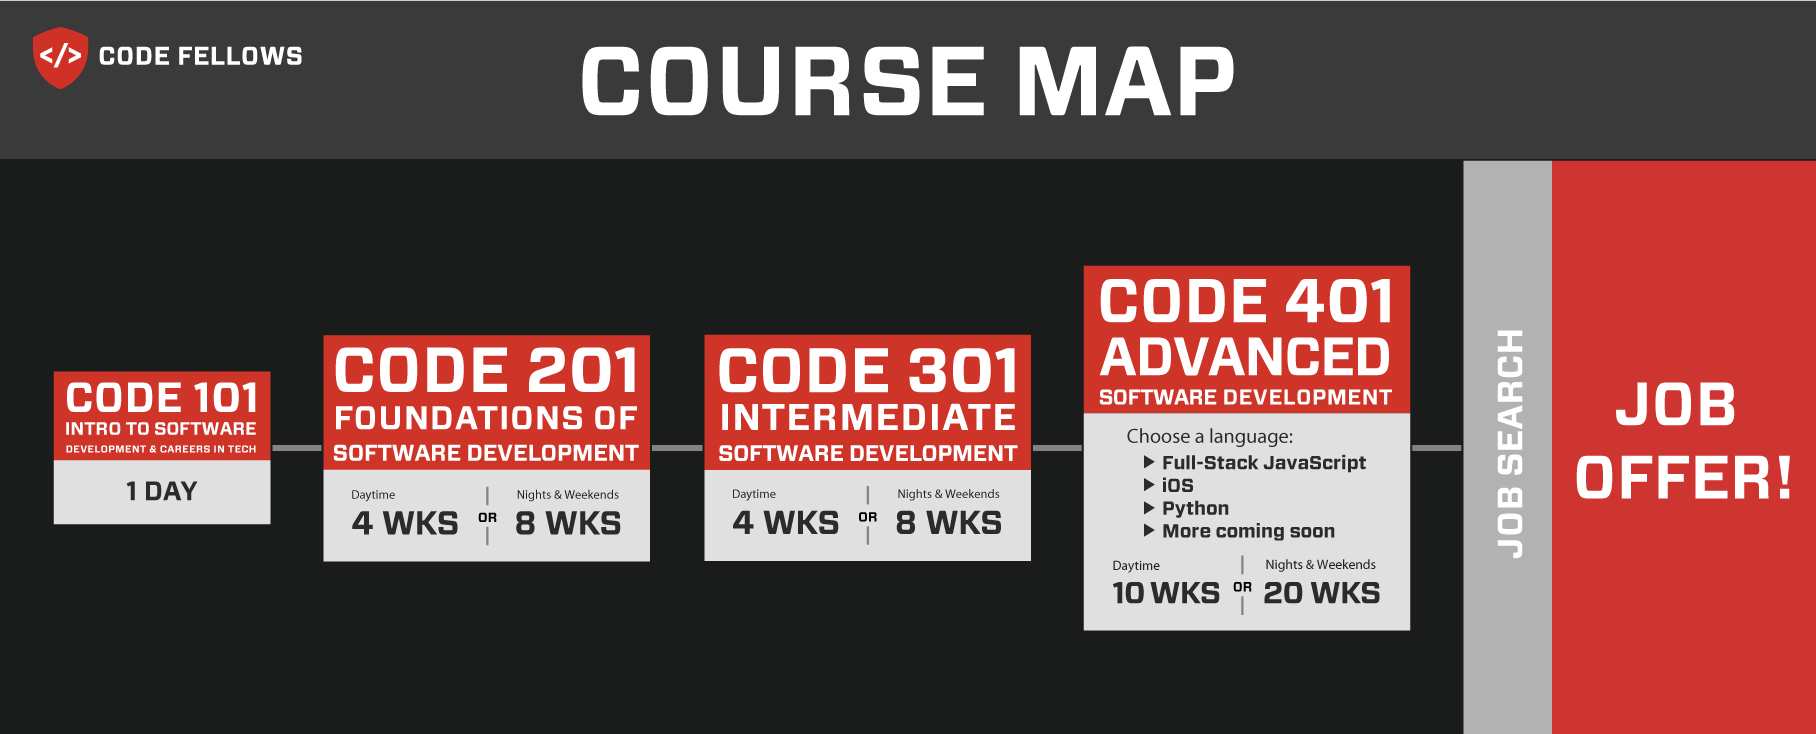 Code Fellows course map